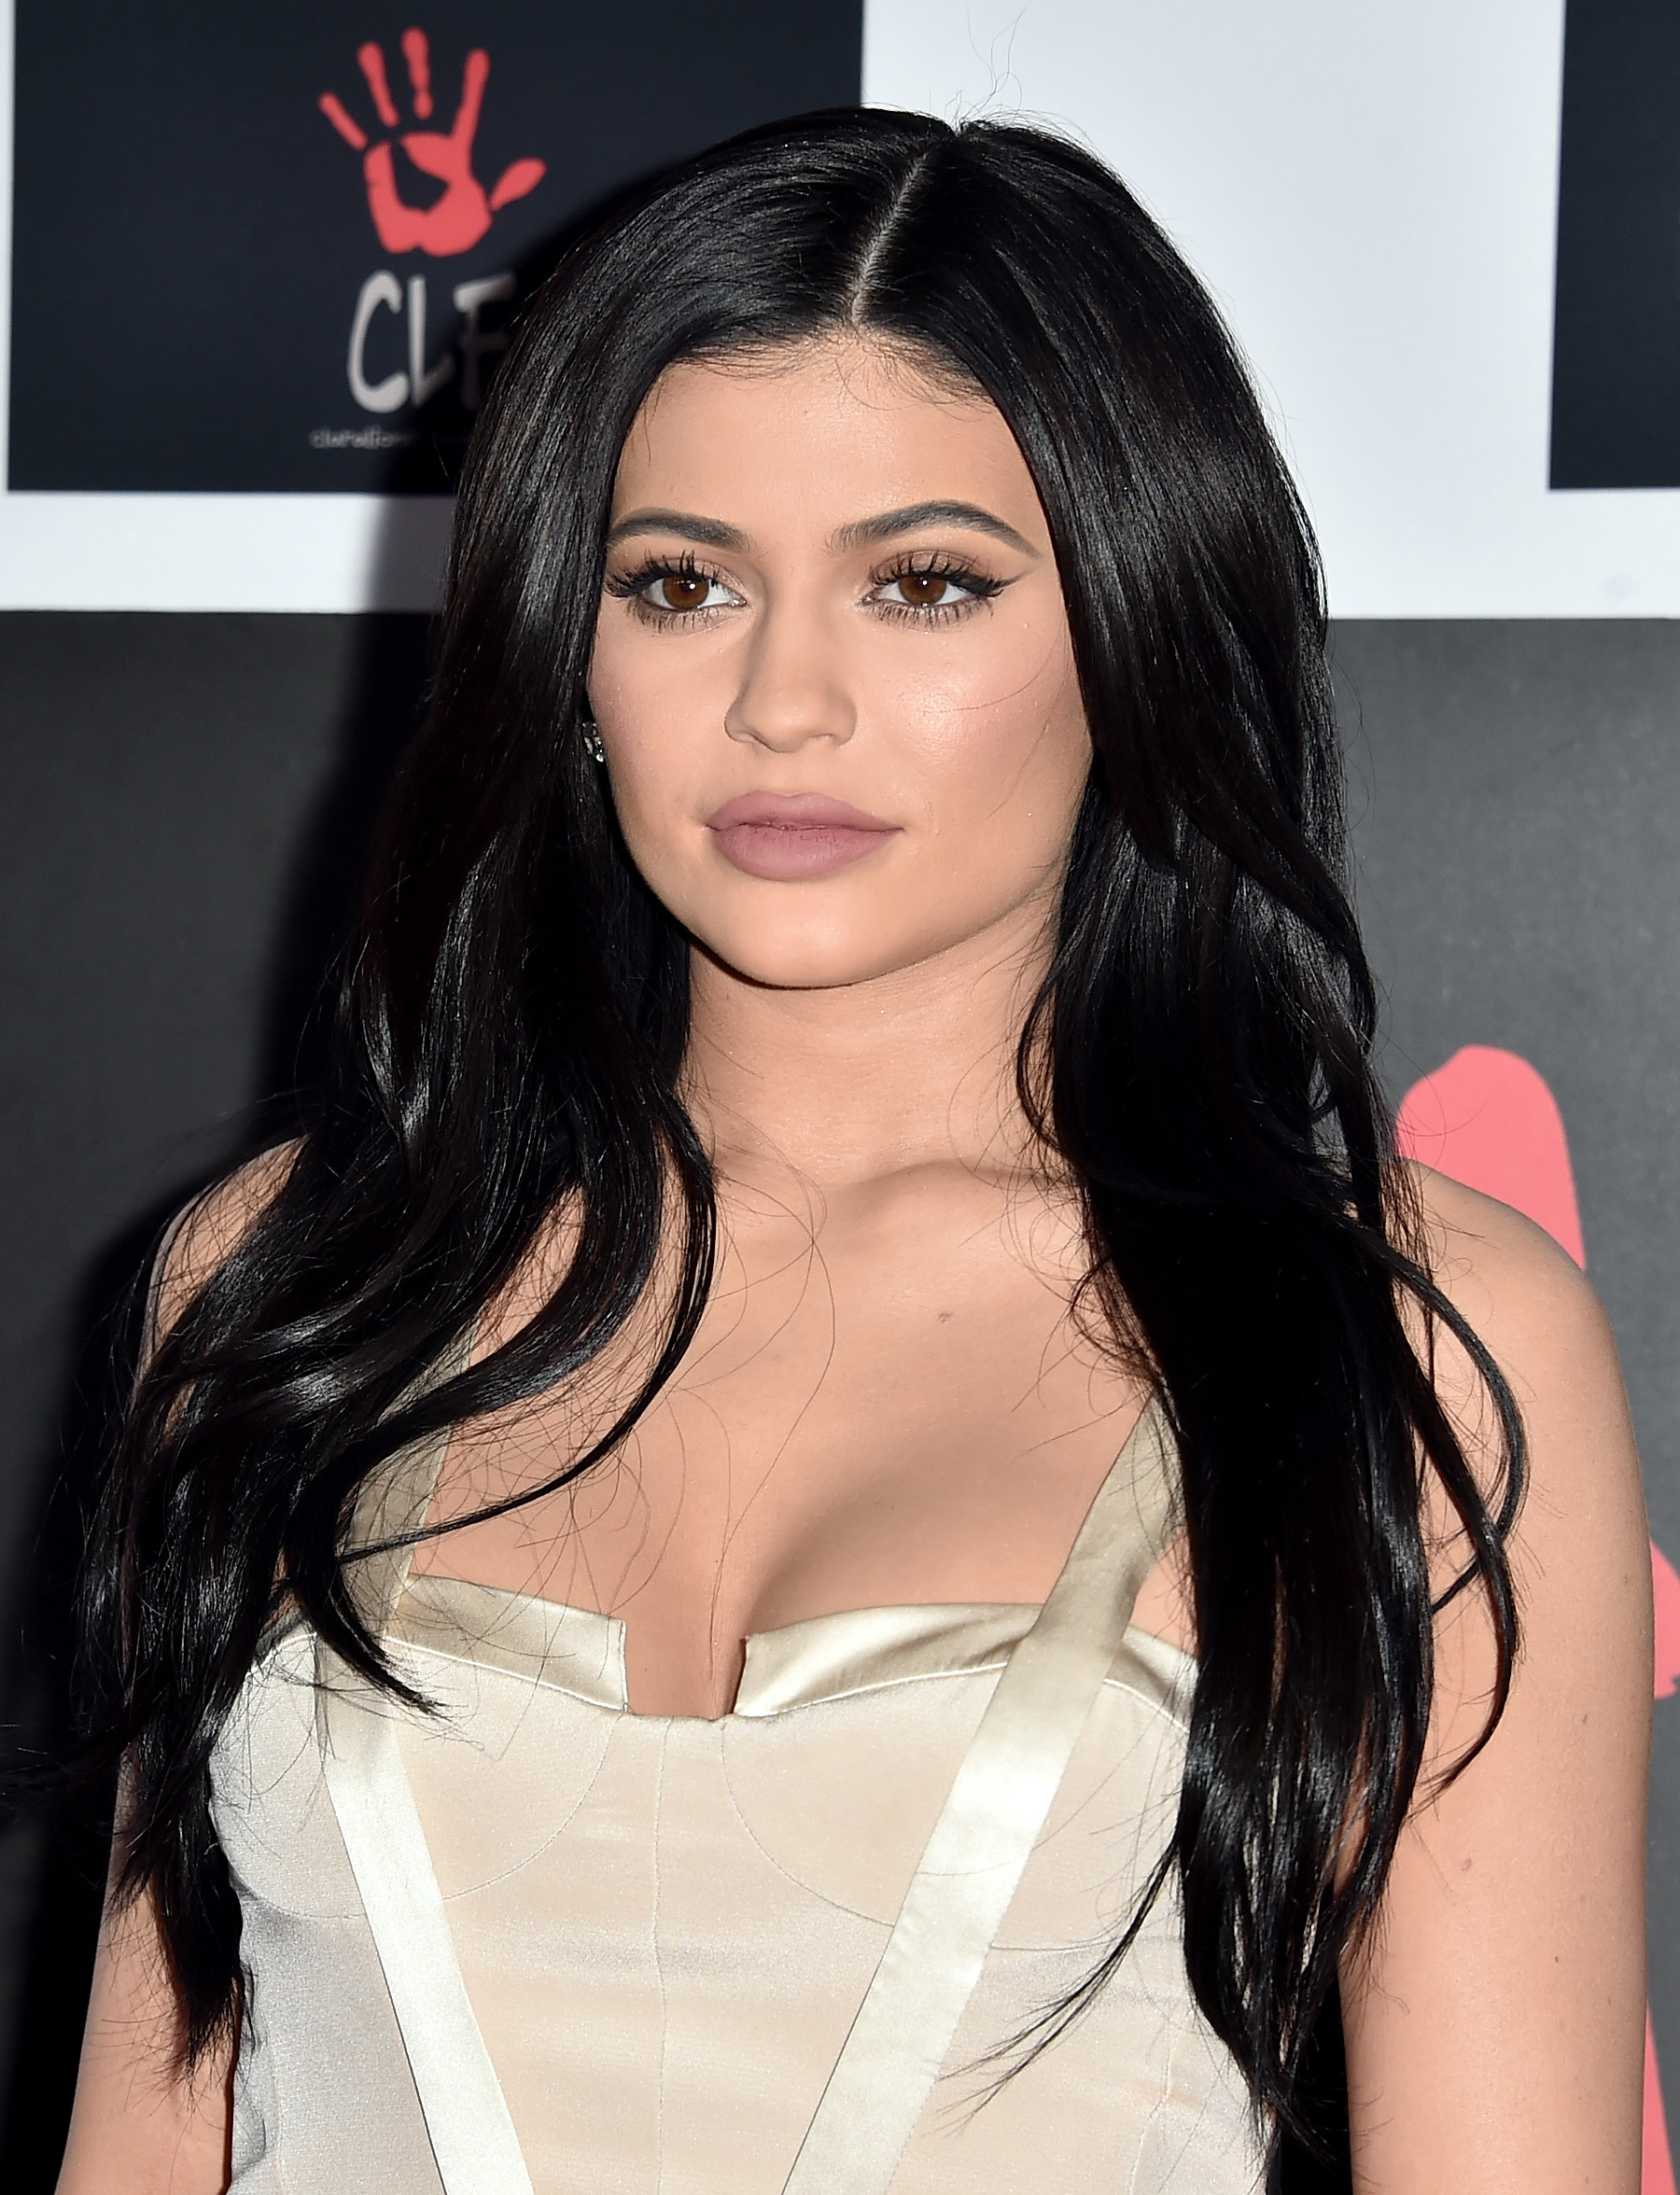 kylie jenner - photo #14